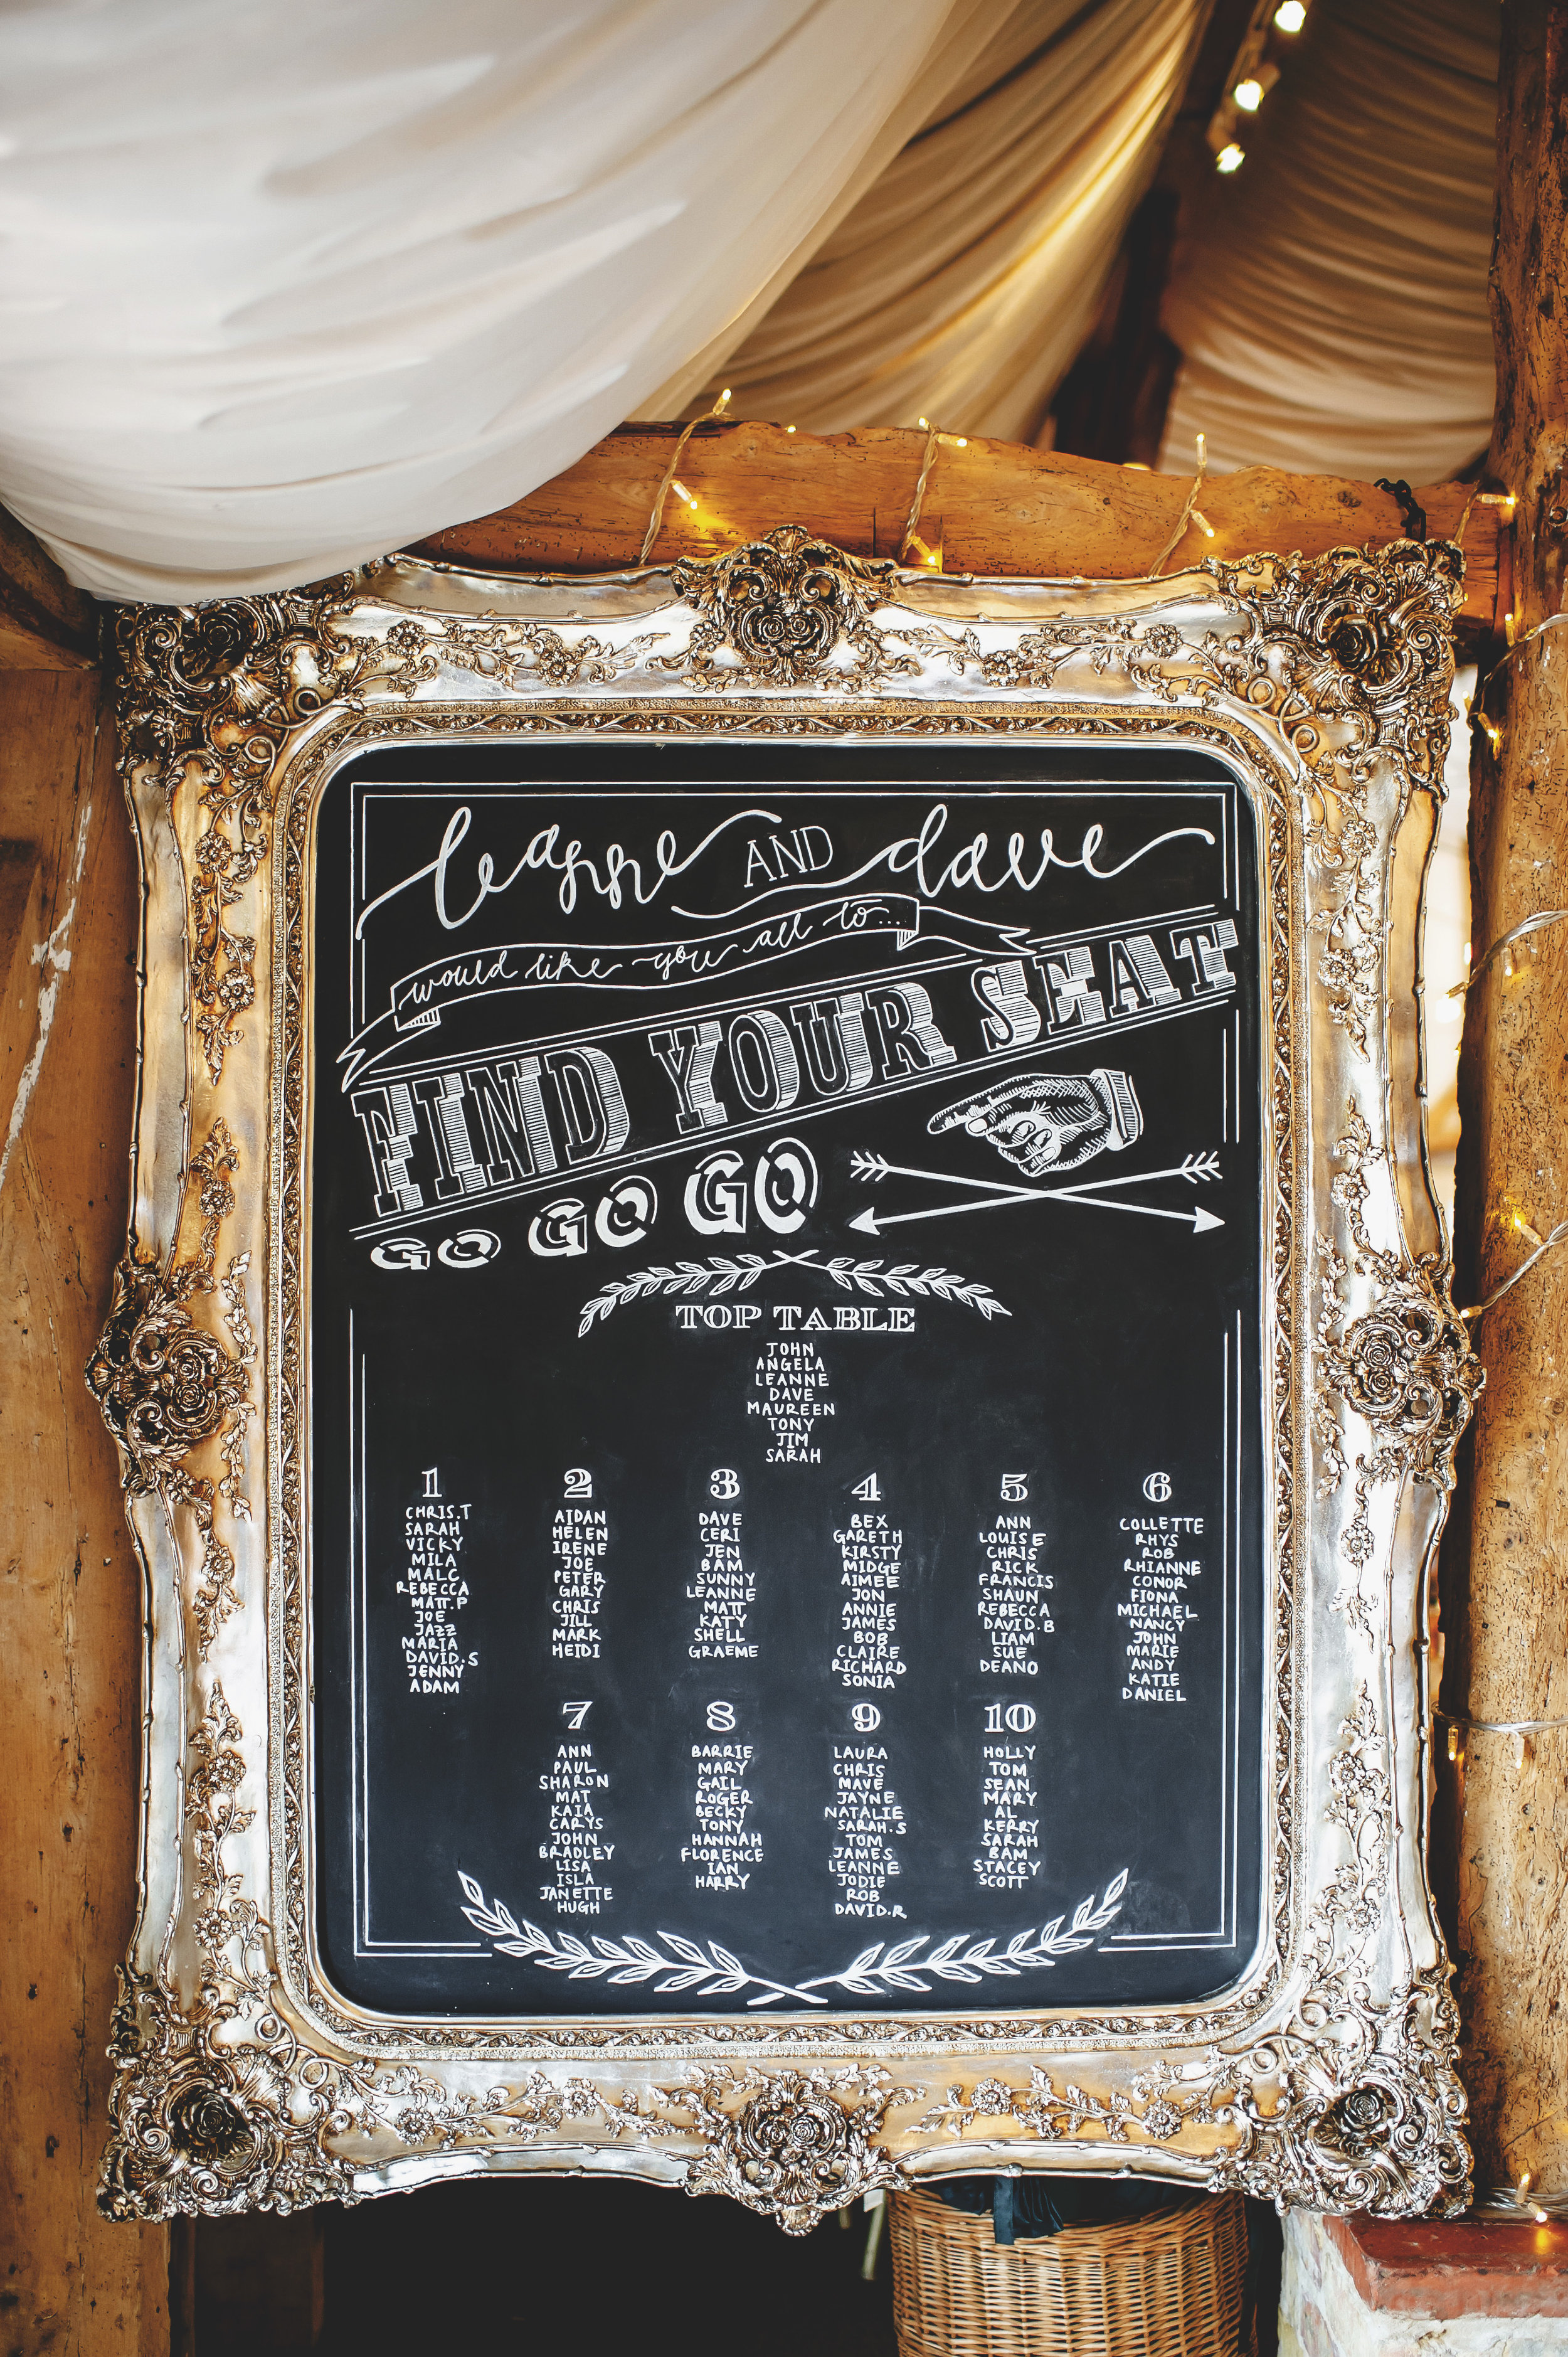 Leanne & Dave-Chalk Board Table Plan.jpg